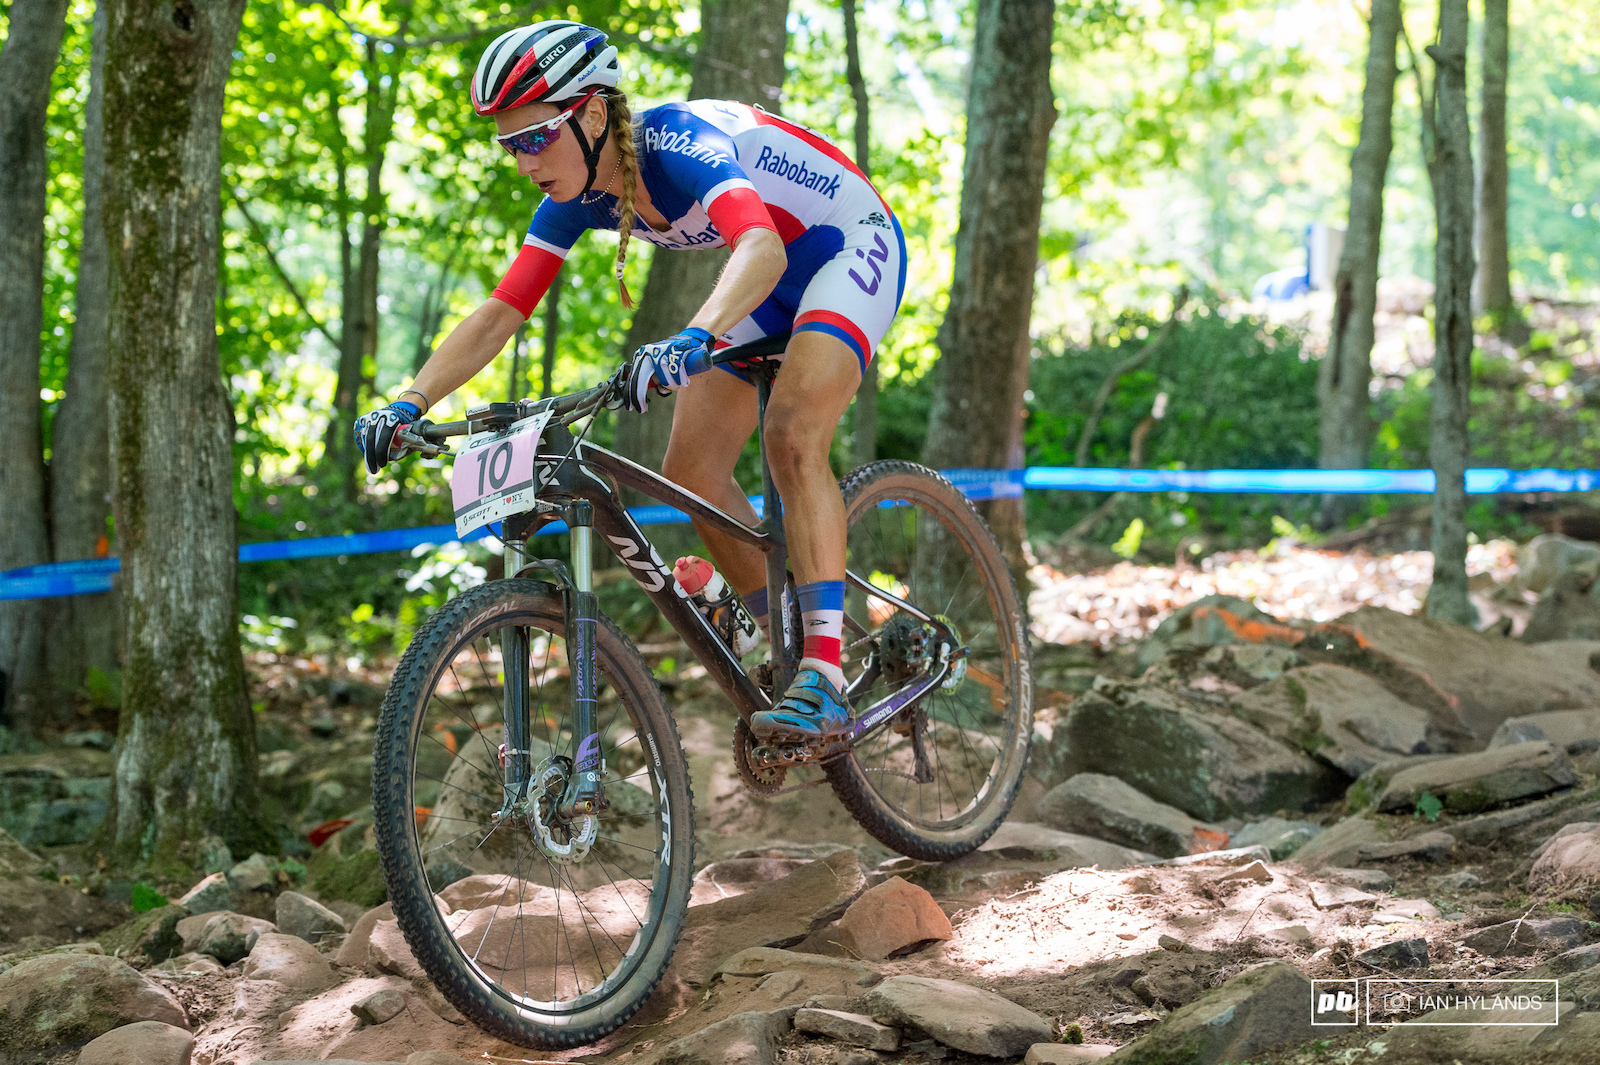 Pauline Prevot has won World Championship titles in Cyclocross and Road Racing and in 2009 she was the Junior XC World Champion. She just took off in this race and never looked back top of the 2nd lap and already almost a minute up on the rest of the field.